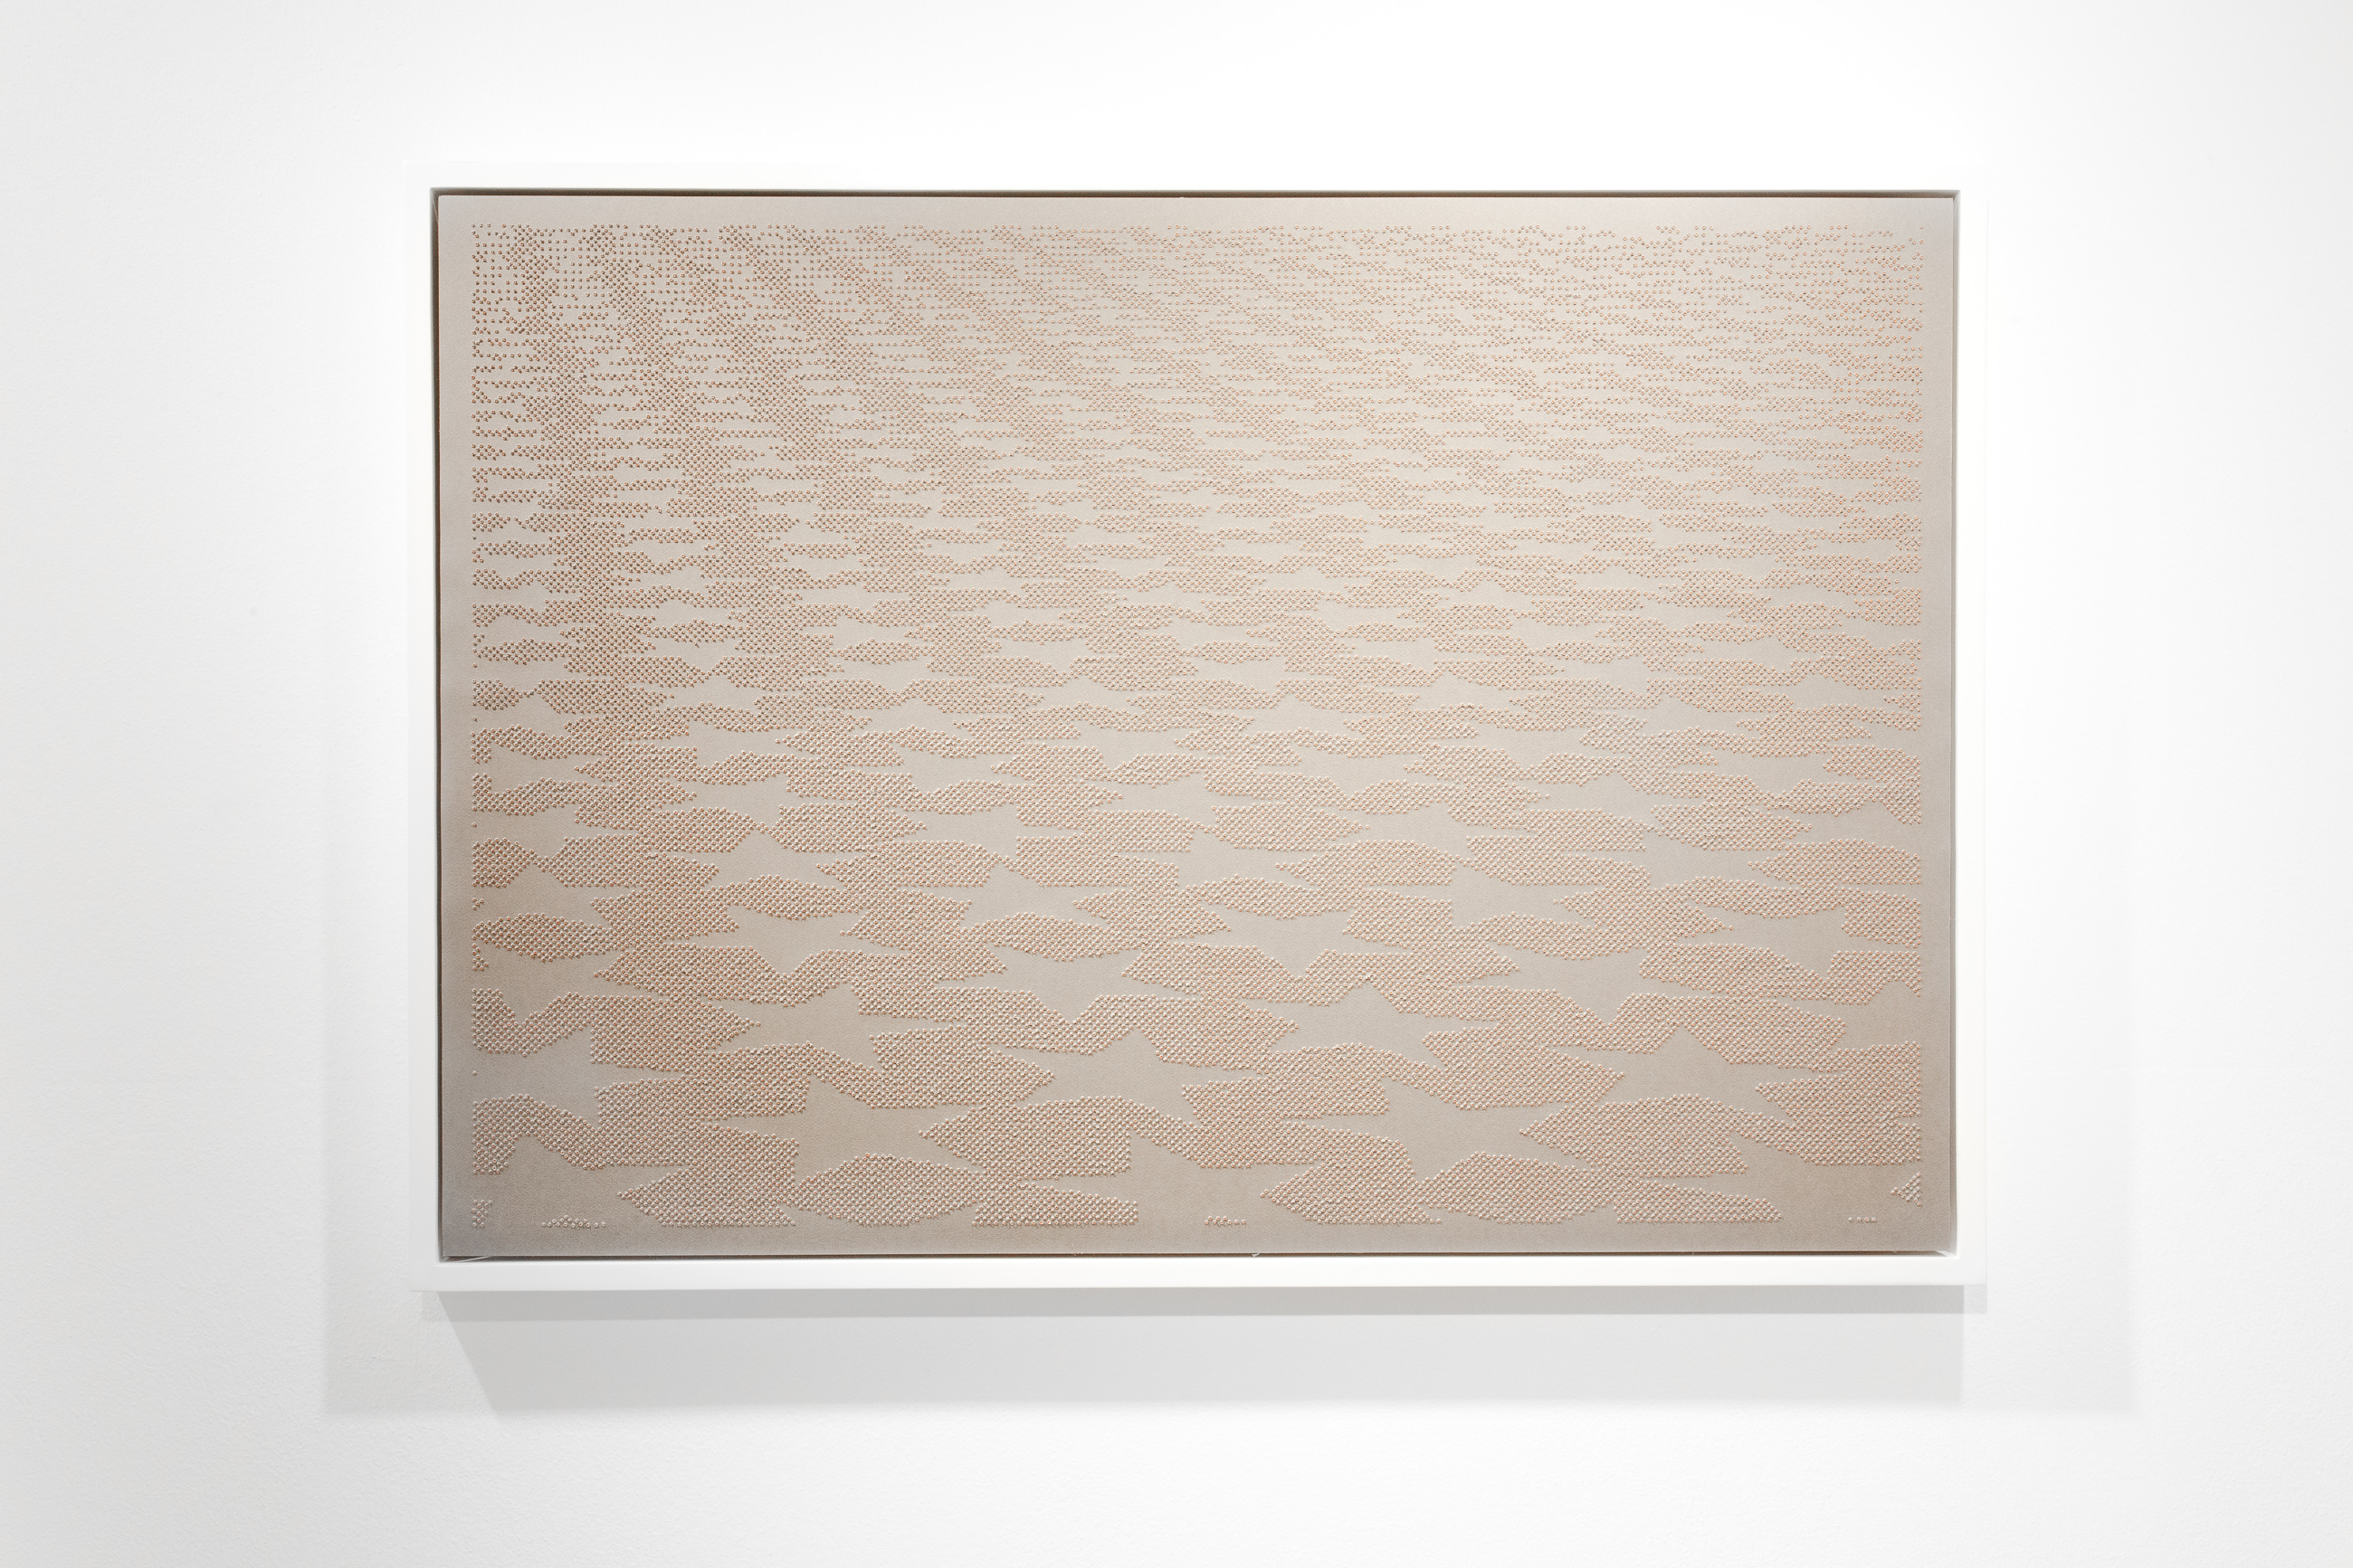 Arthur Duff, Parallax view, 2012, drilled gray paper, 70 x 100 cm